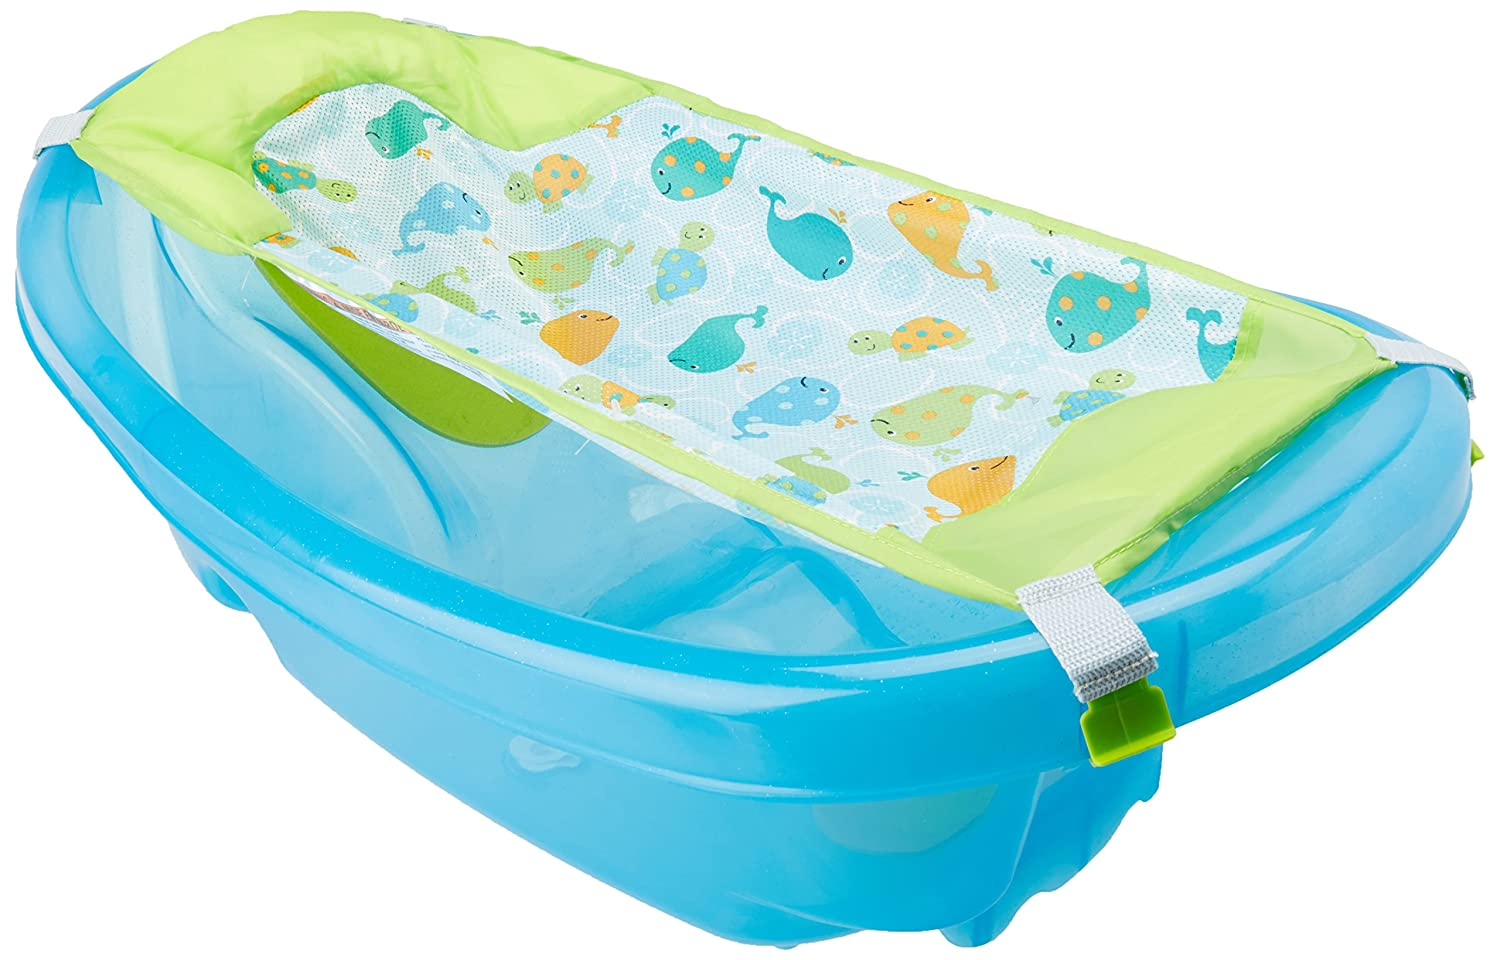 Amazon.com : Summer Infant Sparkle N\' Splash Newborn To Toddler Bath ...